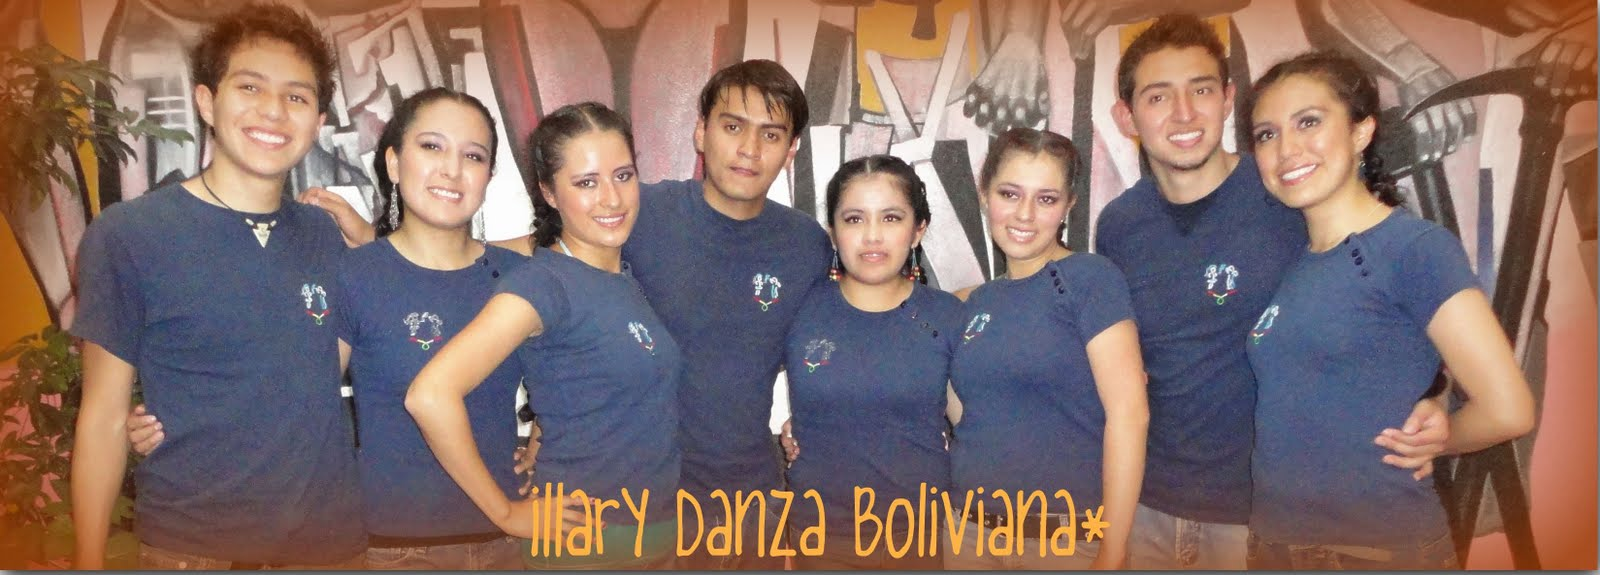 illary DaNzA BoLiAnA